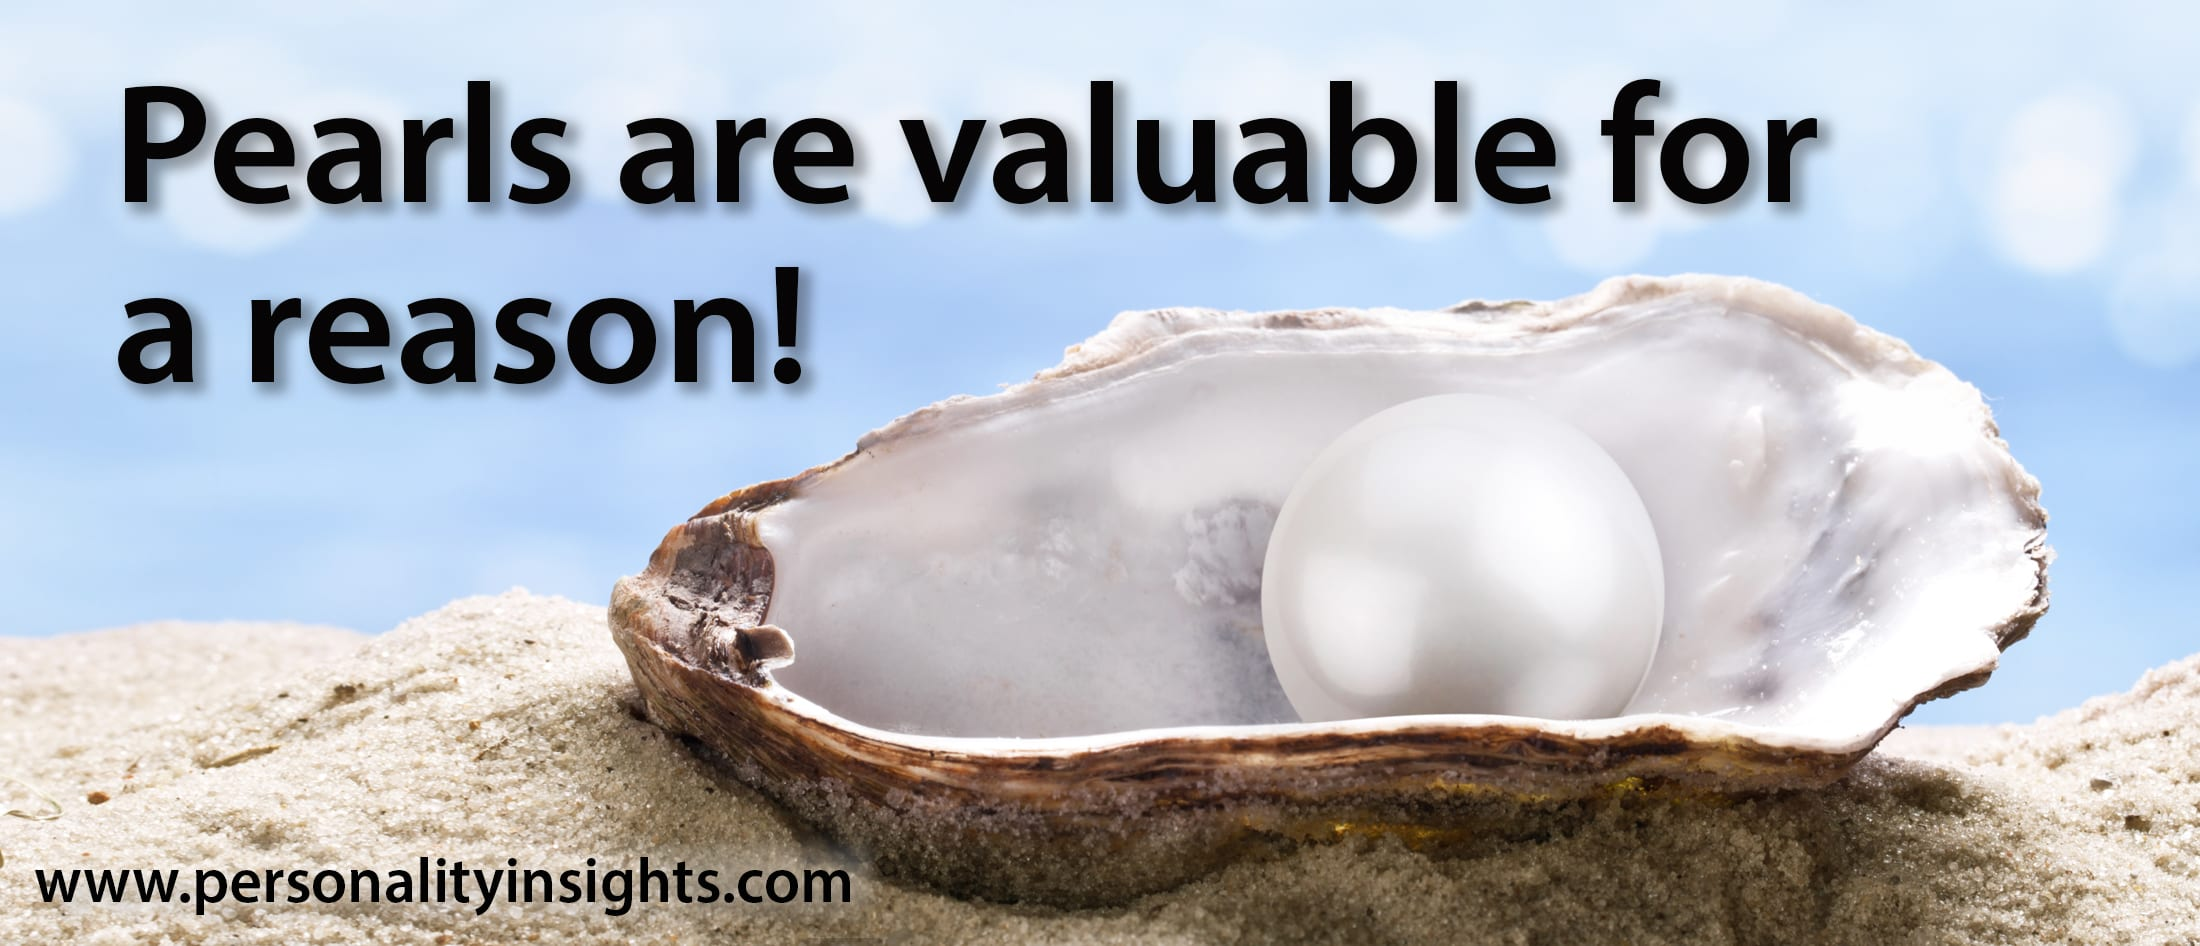 Tip: Pearls are valuable for a reason!